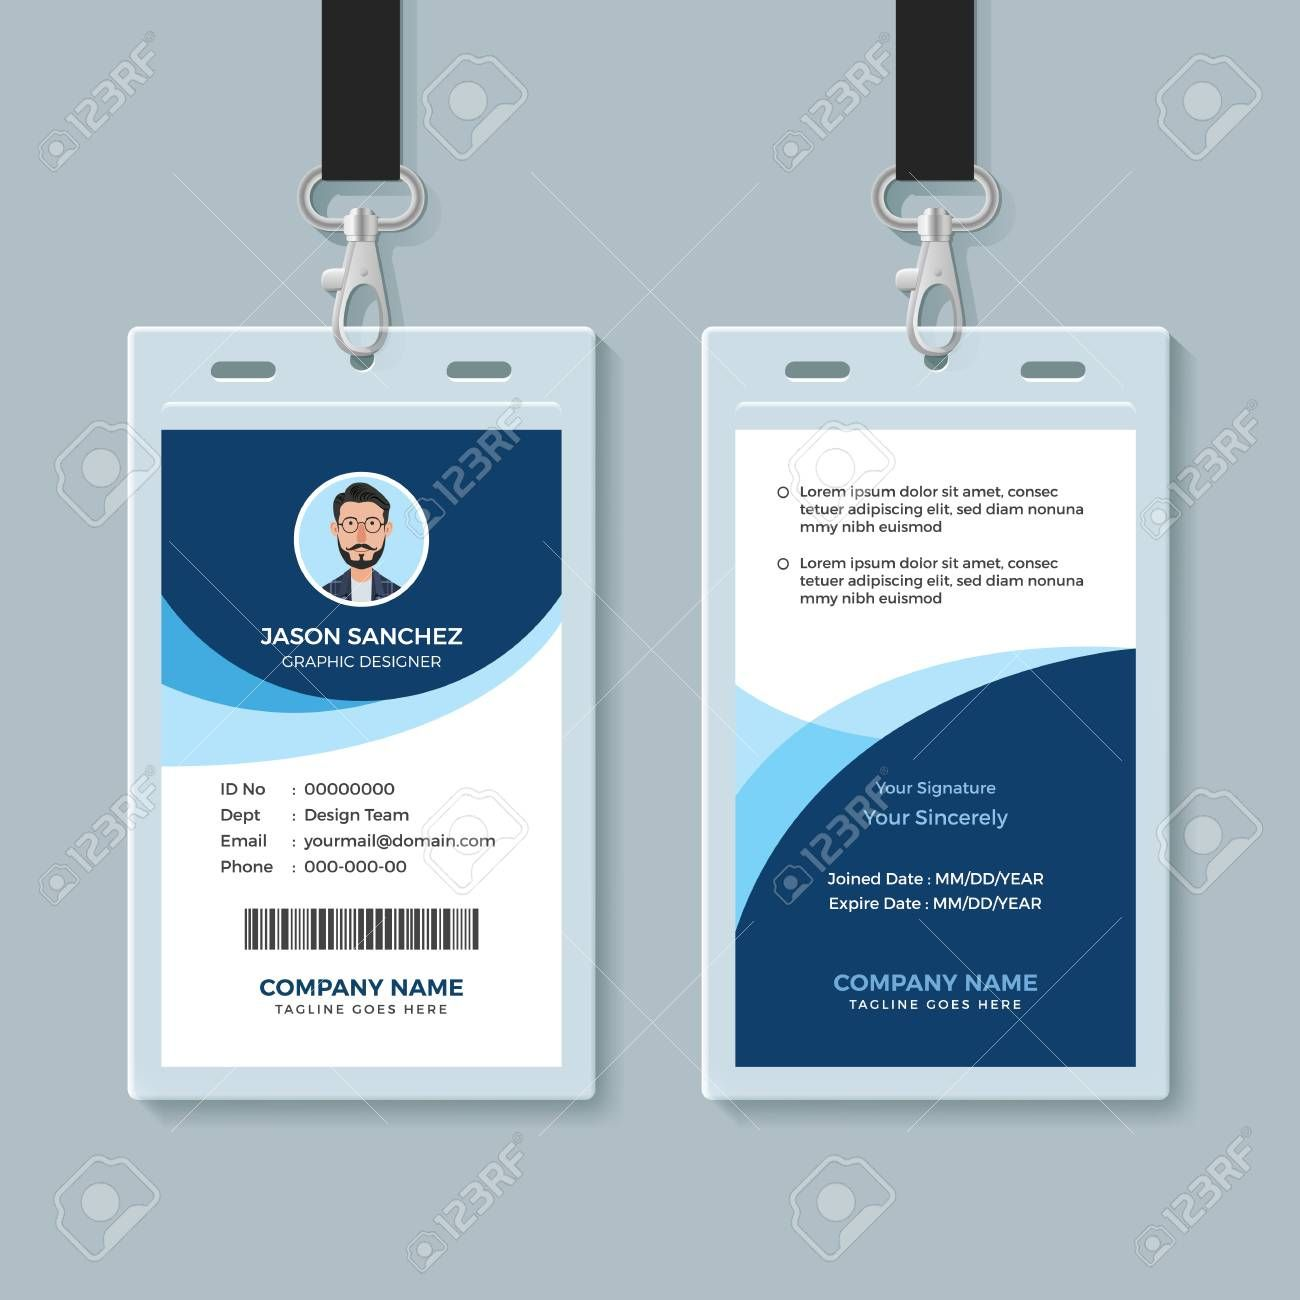 Simple And Clean Employee Id Card Design Template Affiliate Employee Clean Simple Id Template Employee Id Card Employees Card Identity Card Design